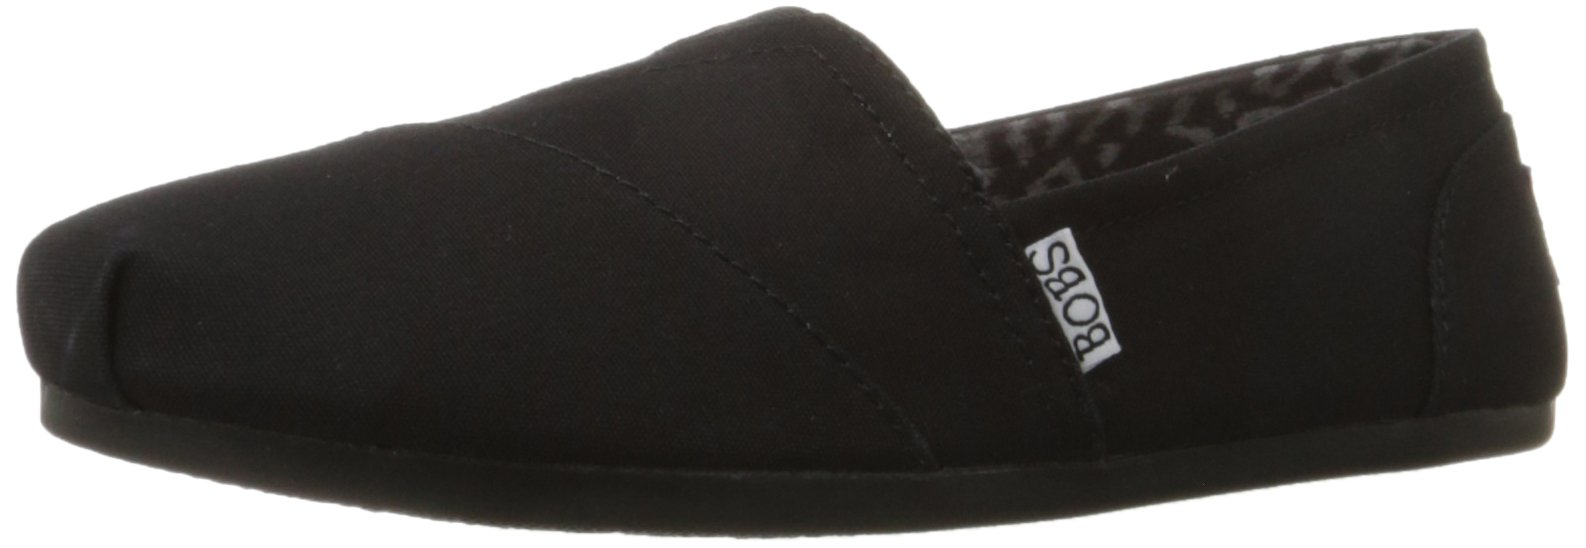 Skechers BOBS from Women's Plush Peace and Love Flat,Black,8 M US